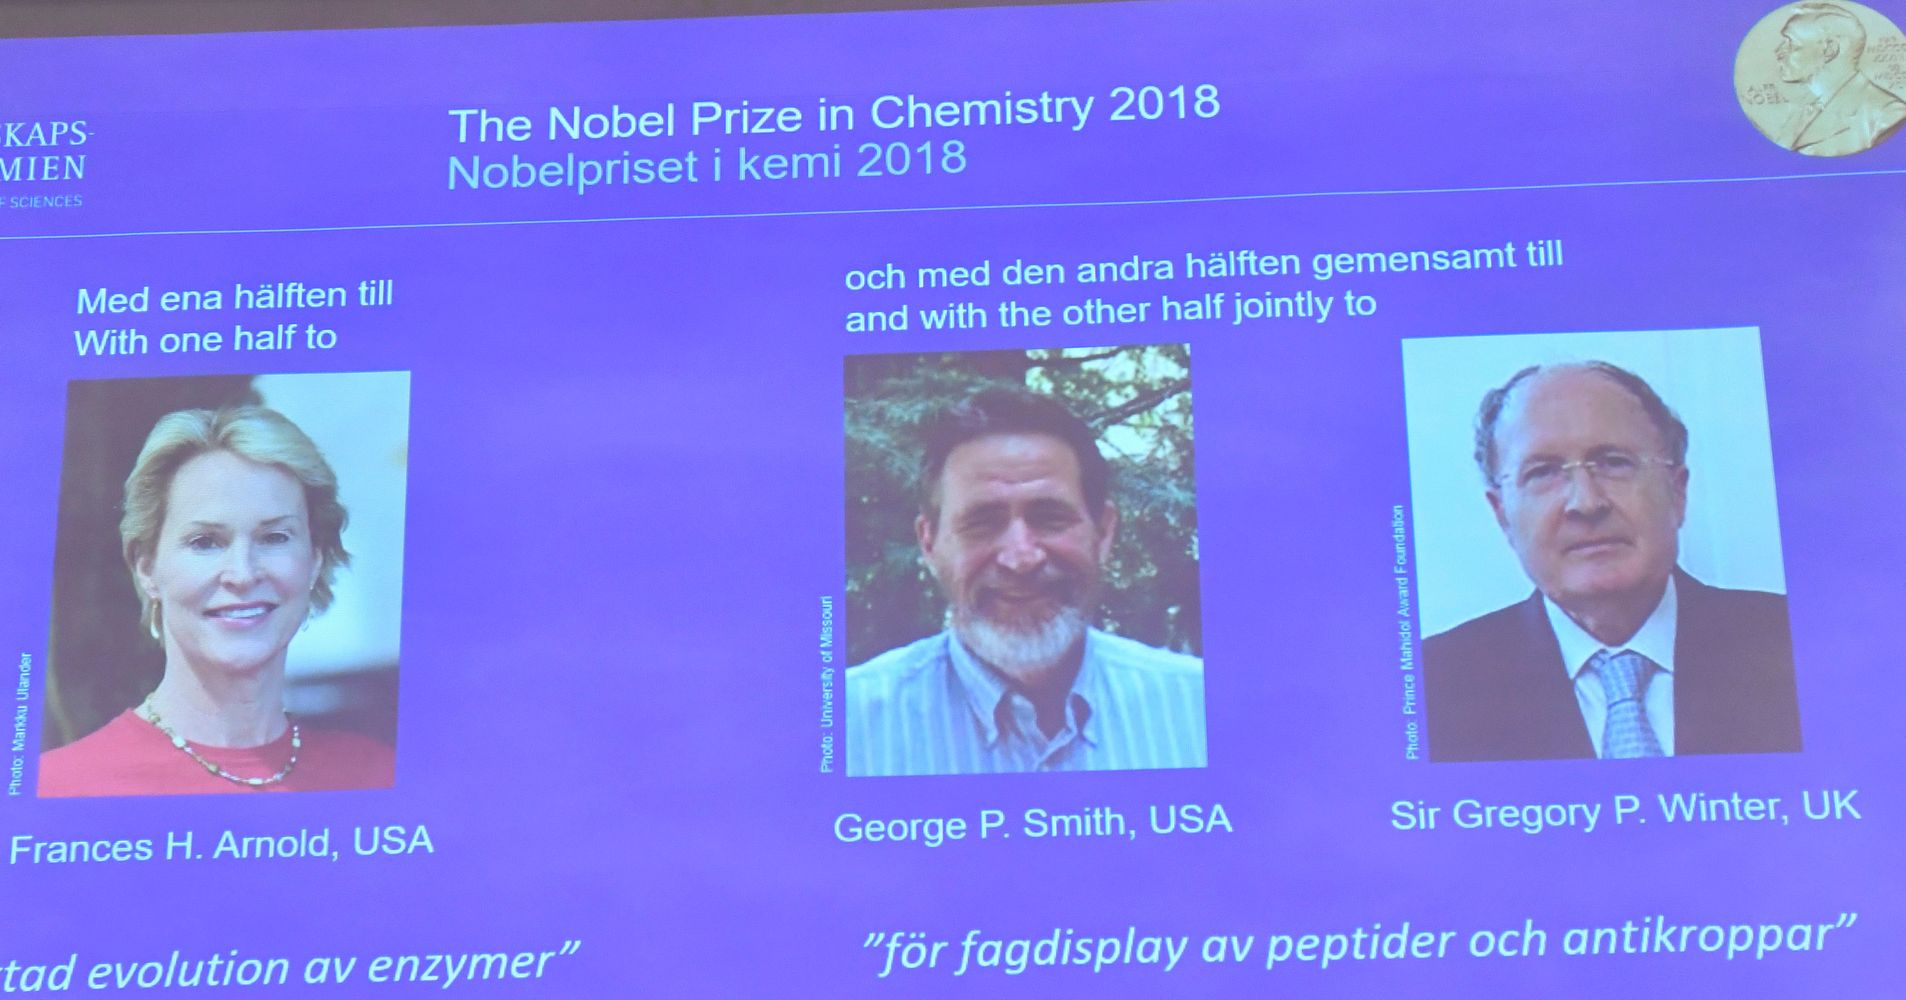 Frances H. Arnold, George P. Smith and Sir Gregory P. Winter Win 2018 Nobel Prize In Chemistry